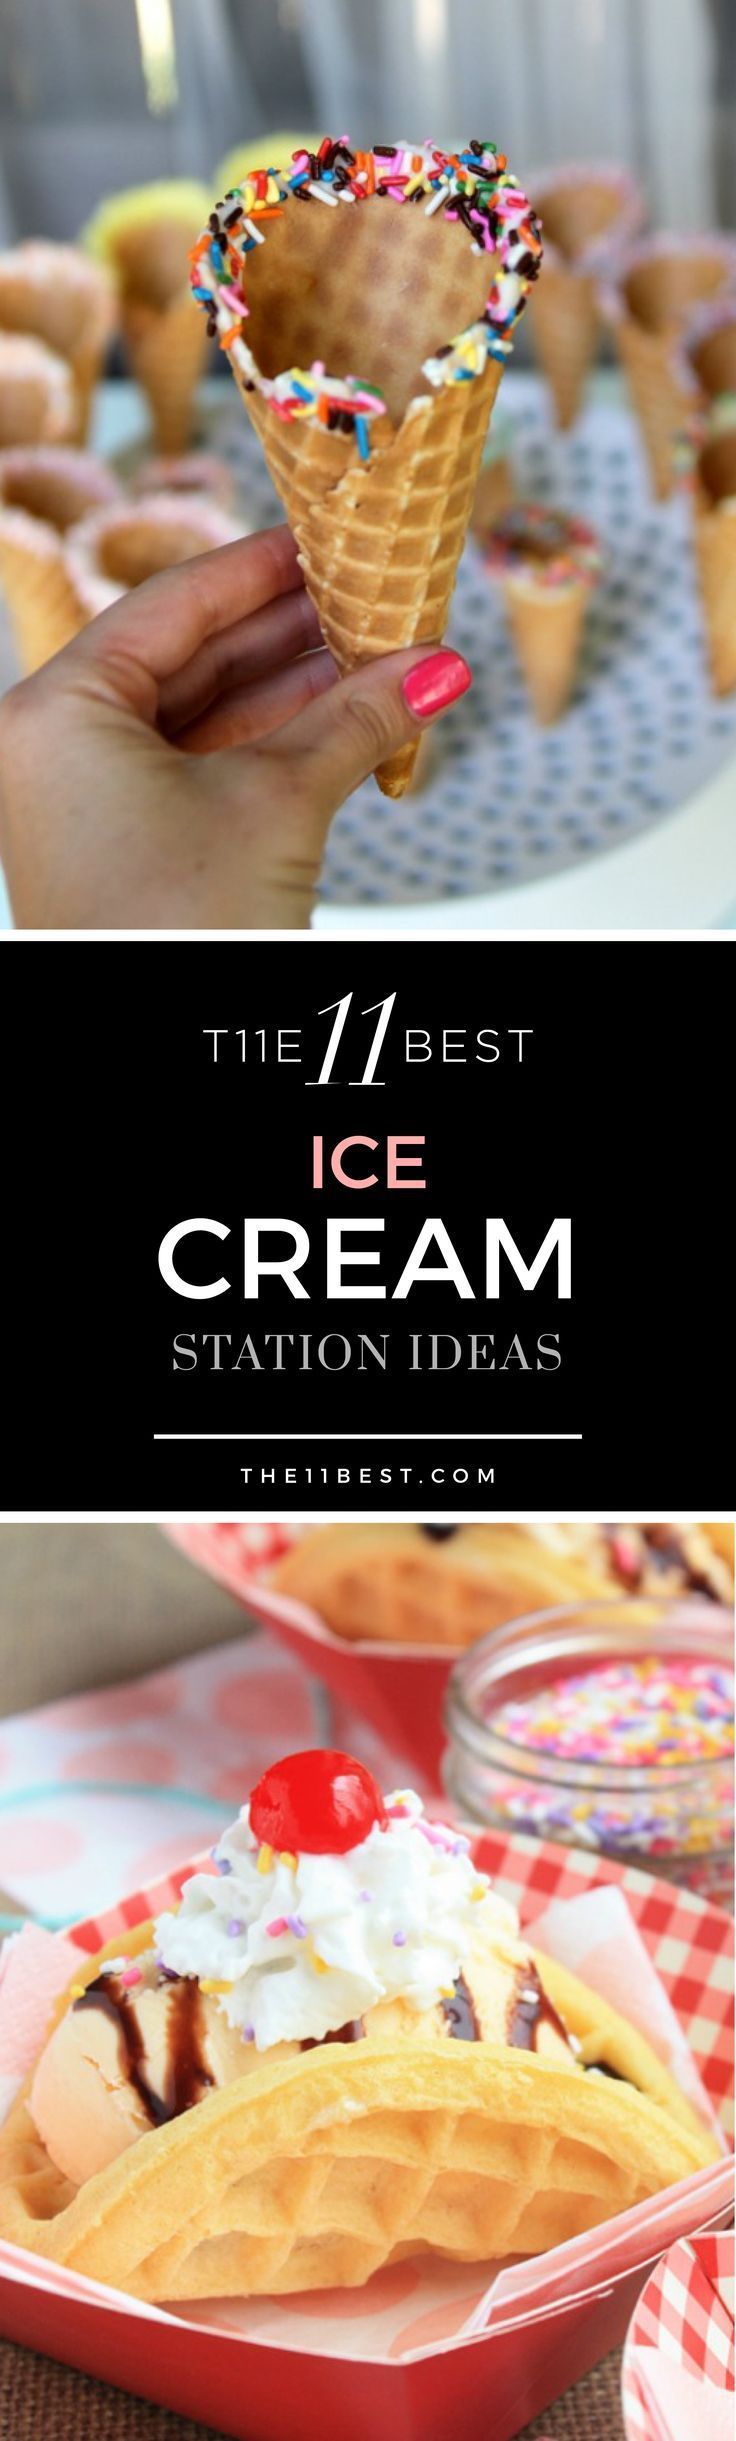 The 11 Best DIY Ice Cream Station Ideas